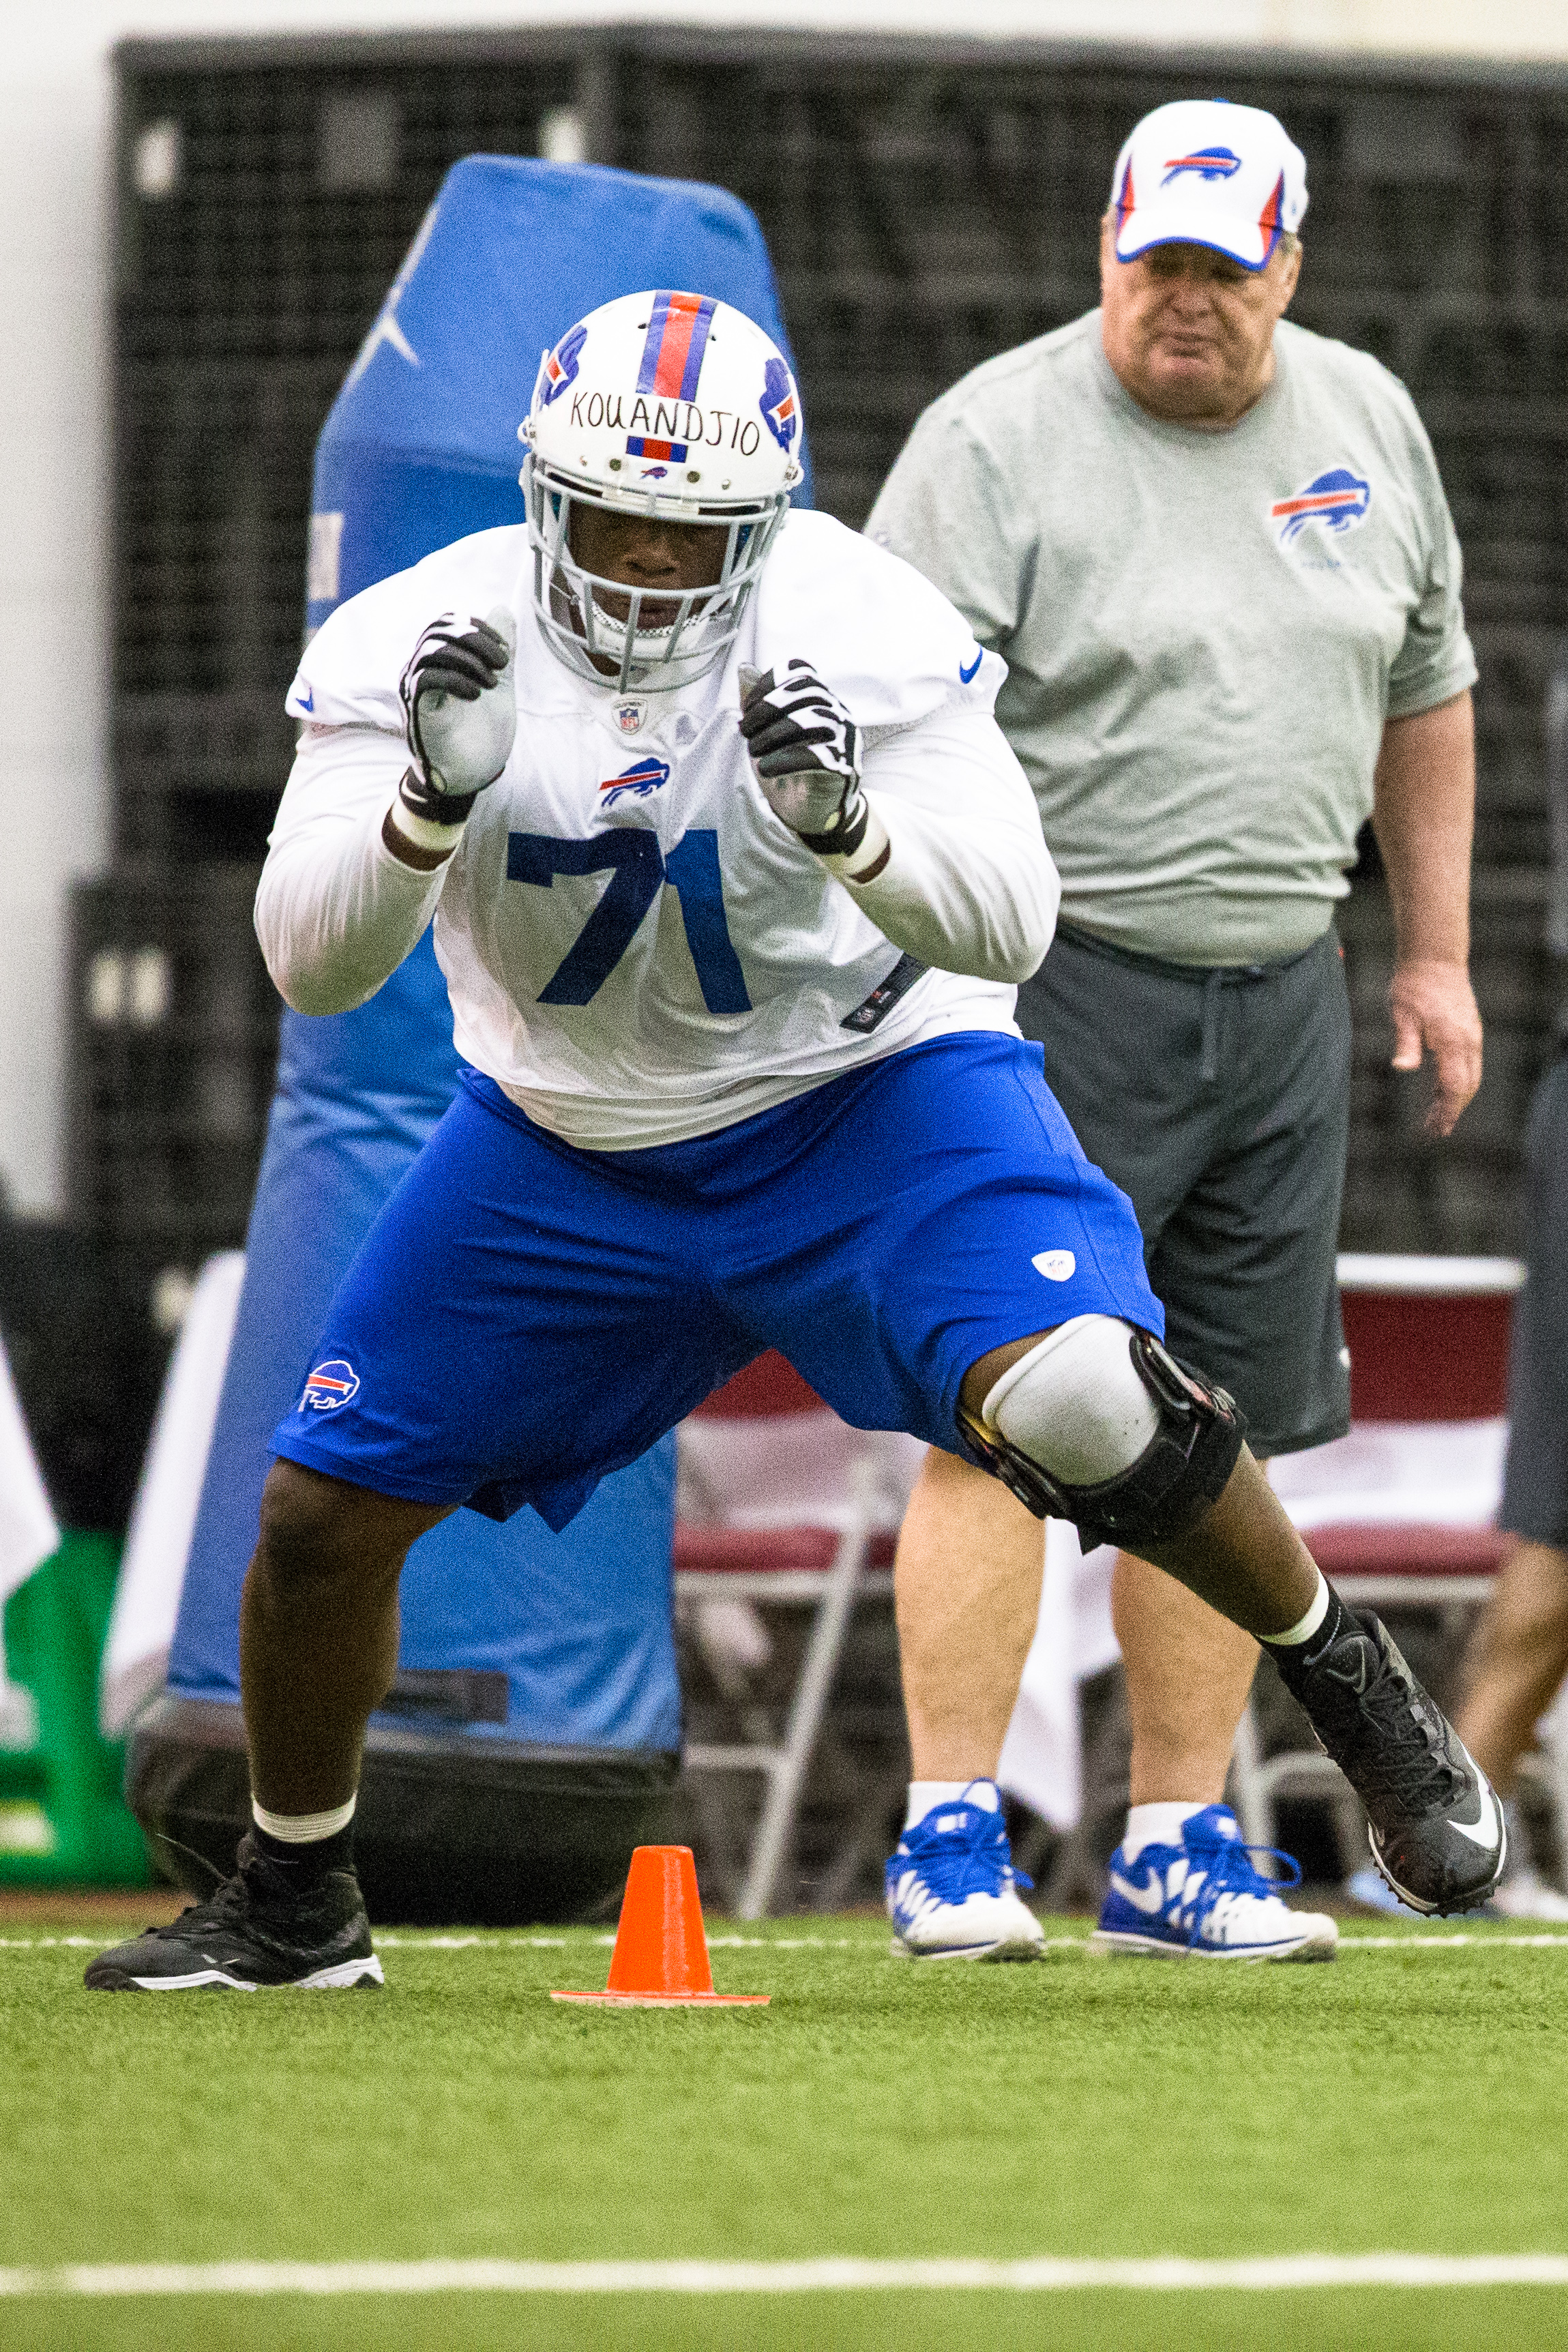 ORCHARD PARK, NY - May 18:  Cyrus Kouandjio #71 of Buffalo Bills takes part in drills during the Buffalo Bills rookie minicamp on May 18, 2014 at Ralph Wilson Stadium in Orchard Park, New York.  (Photo by Brett Carlsen/Getty Images)